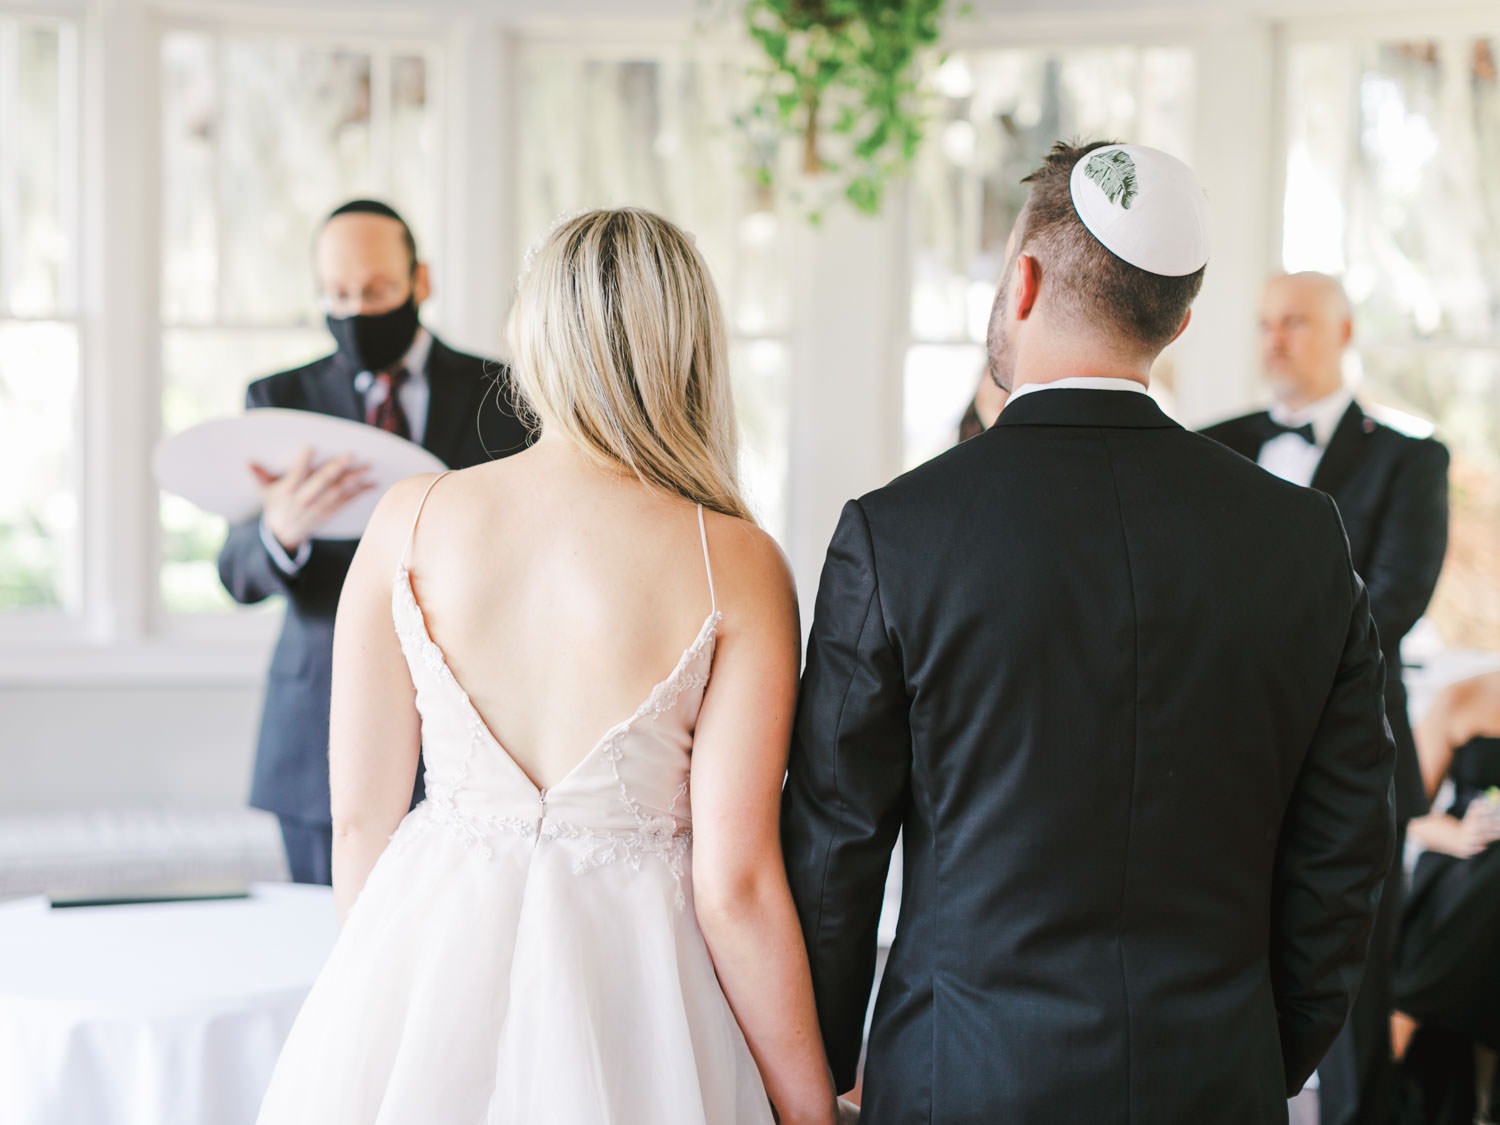 Intimate ketubah signing with white yarmulke with a banana leaf embroidered. Jekyll Island Club Resort Wedding by Cavin Elizabeth Photography